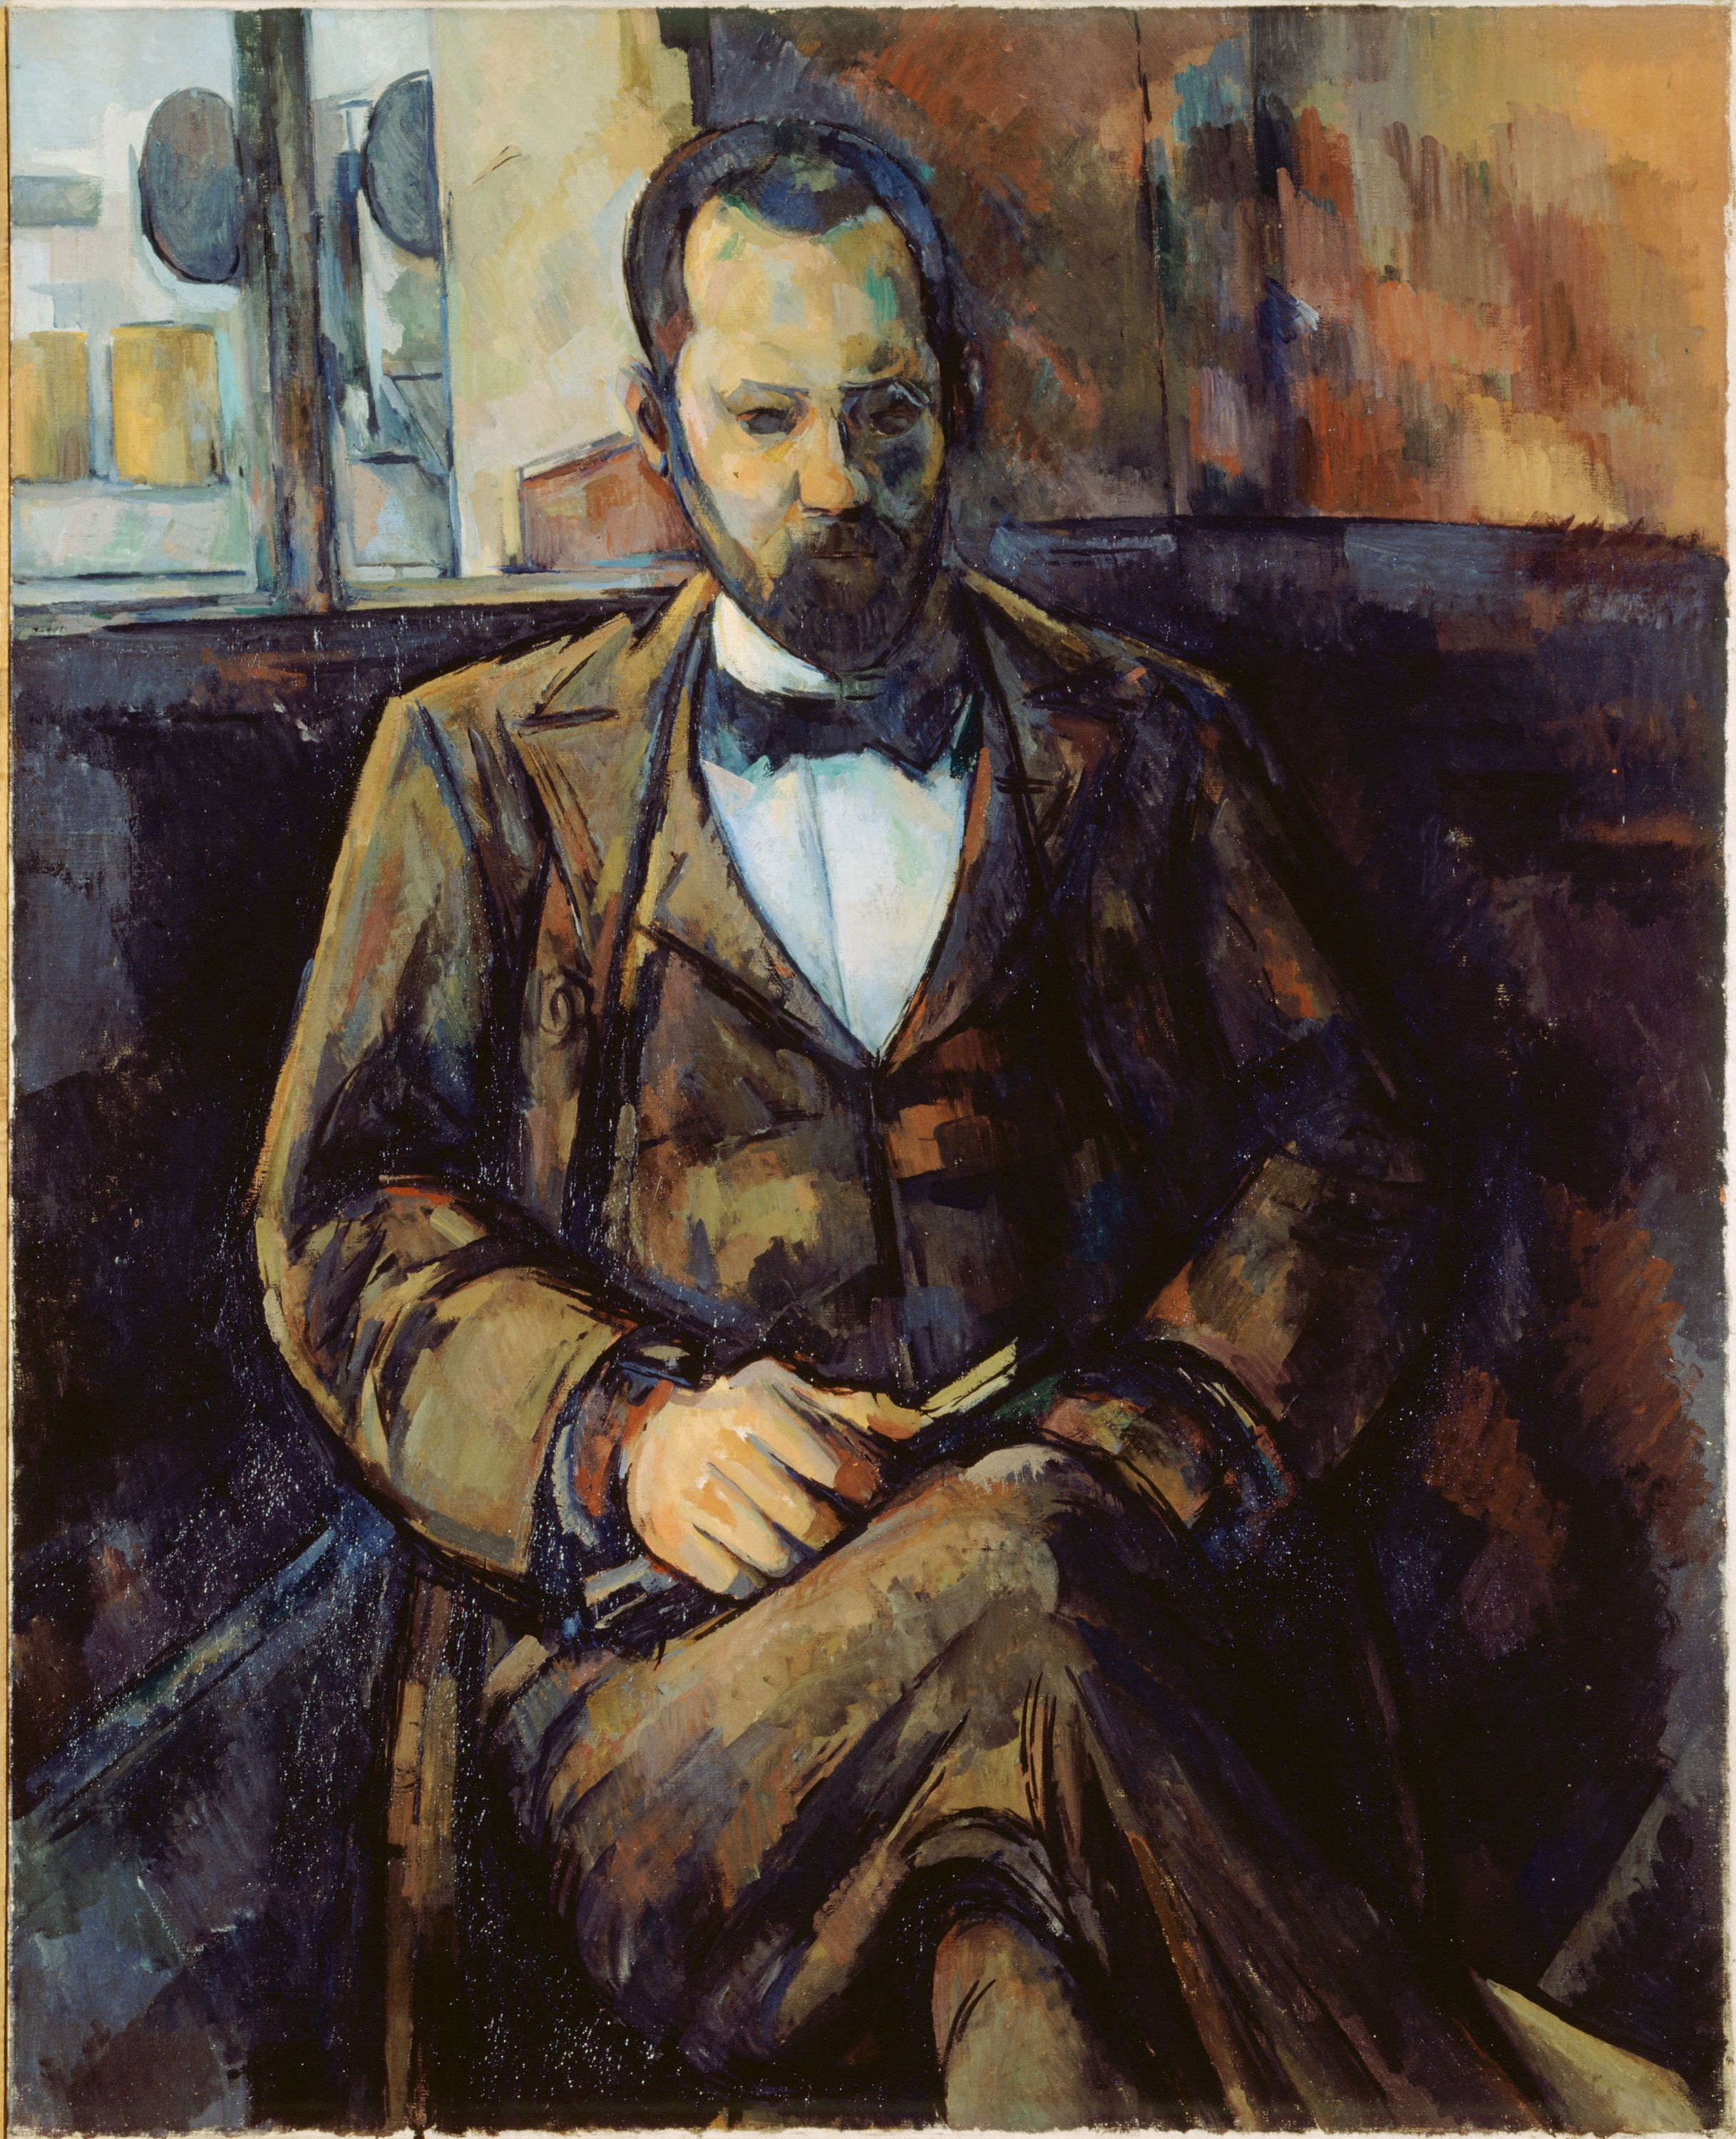 Paul Cézanne, Portrait d'Ambroise Vollard